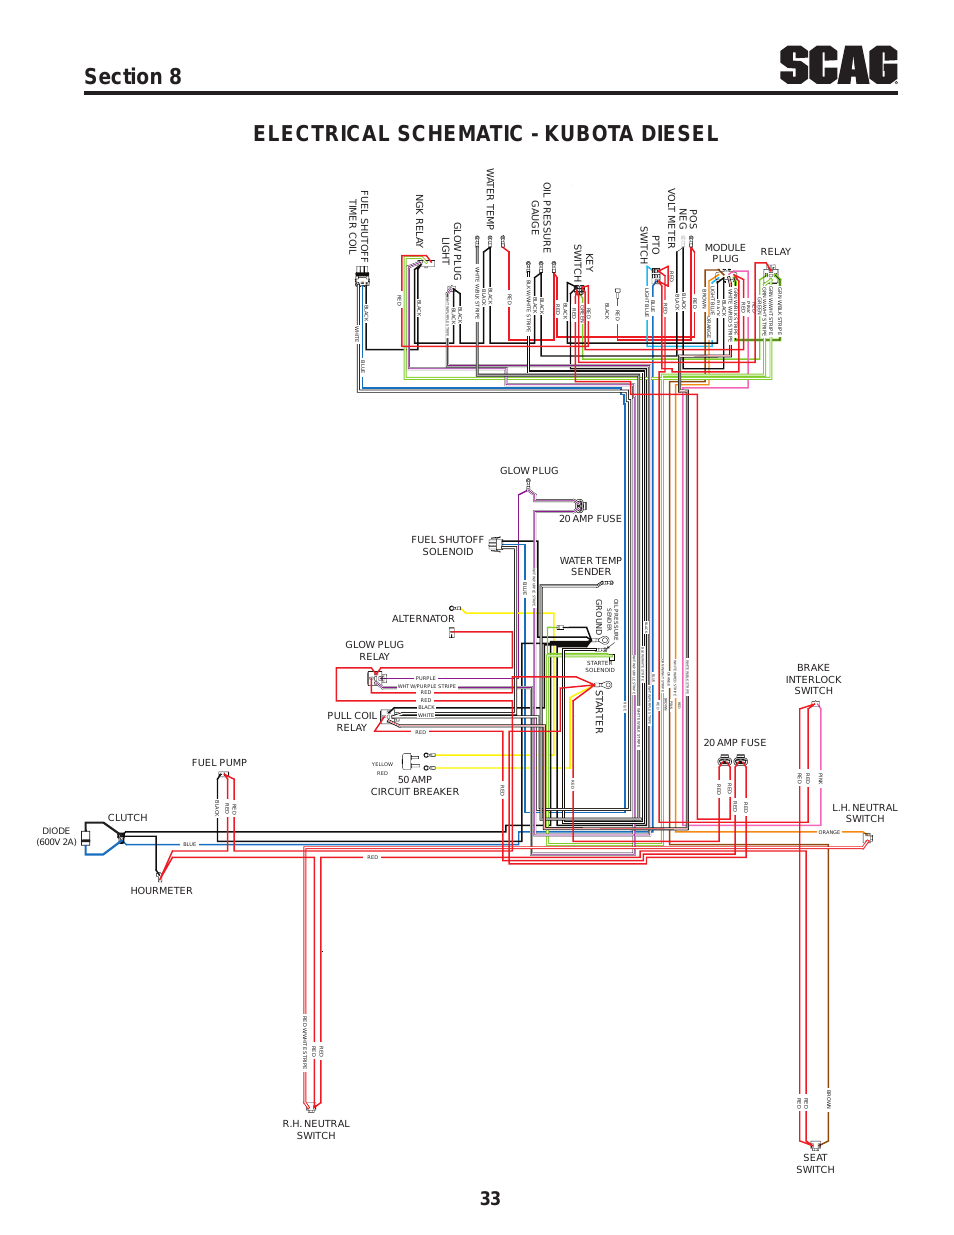 Scag Turf Tiger Ignition Switch Wiring Diagram - wiring diagram load-view -  load-view.vaiatempo.it | Turf Tiger Pto Switch Wiring Diagram |  | Vai a Tempo!